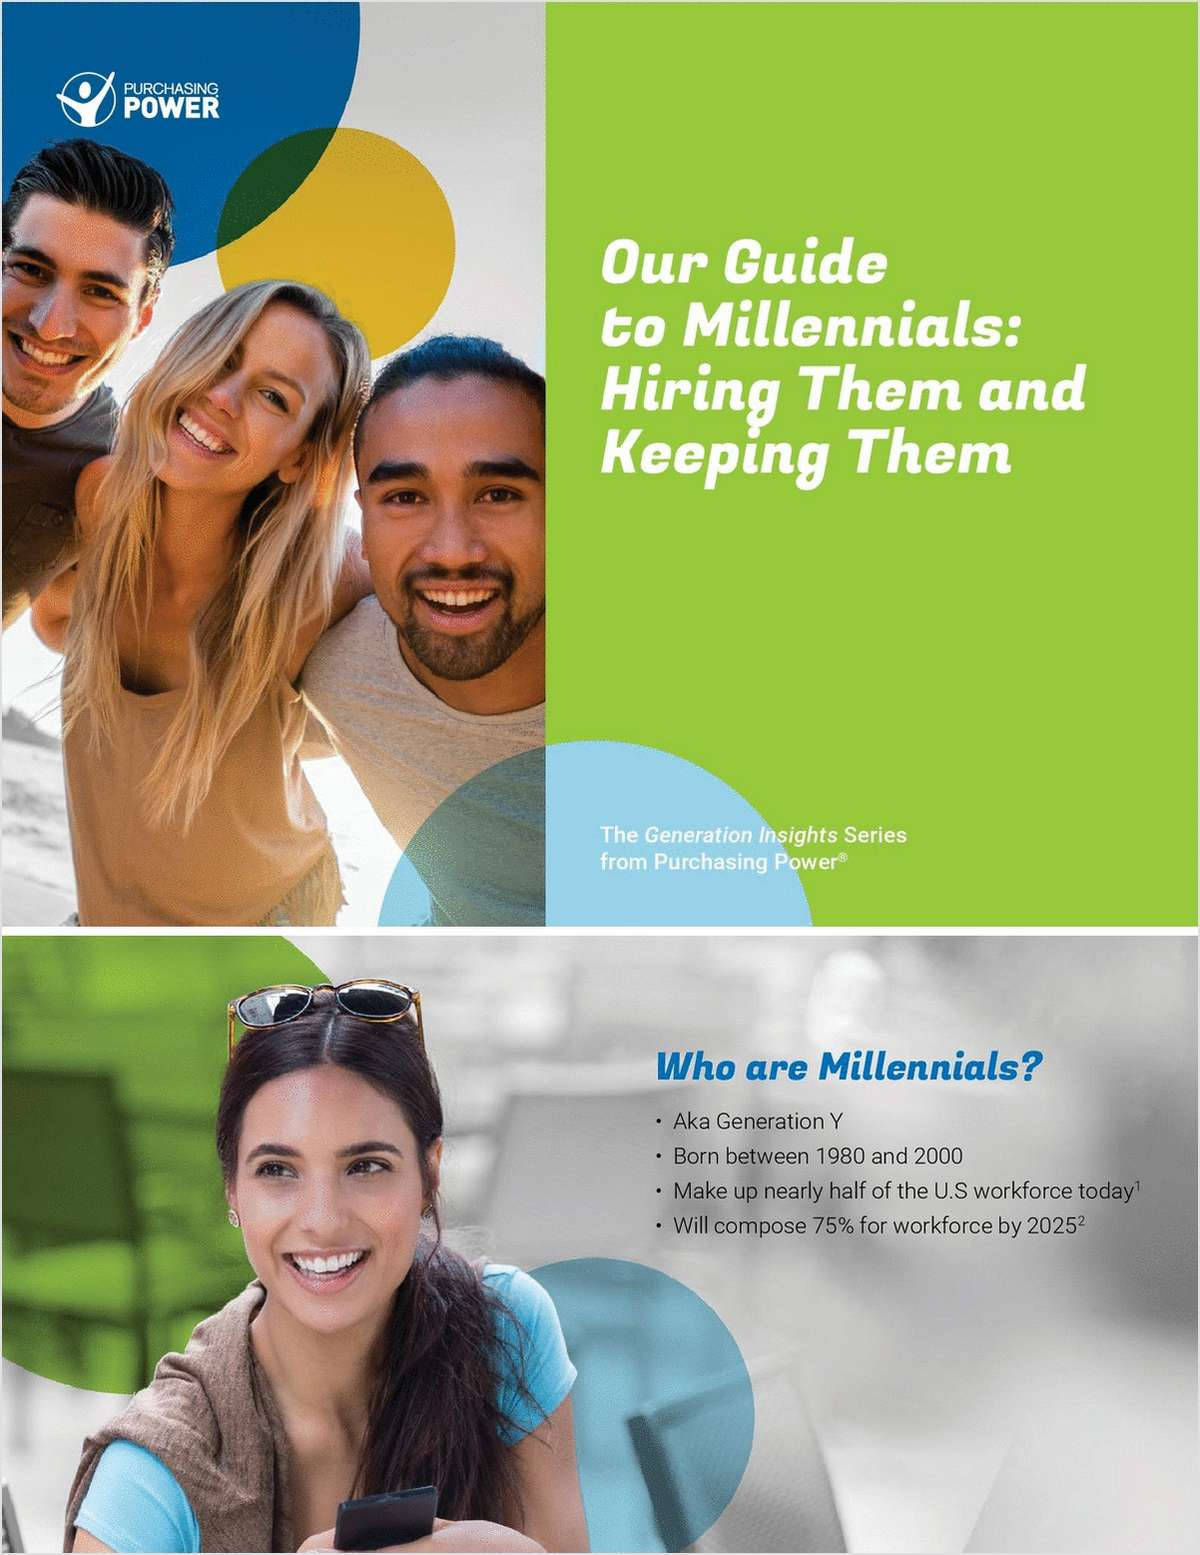 Guide to Millennials: Hiring Them and Keeping Them